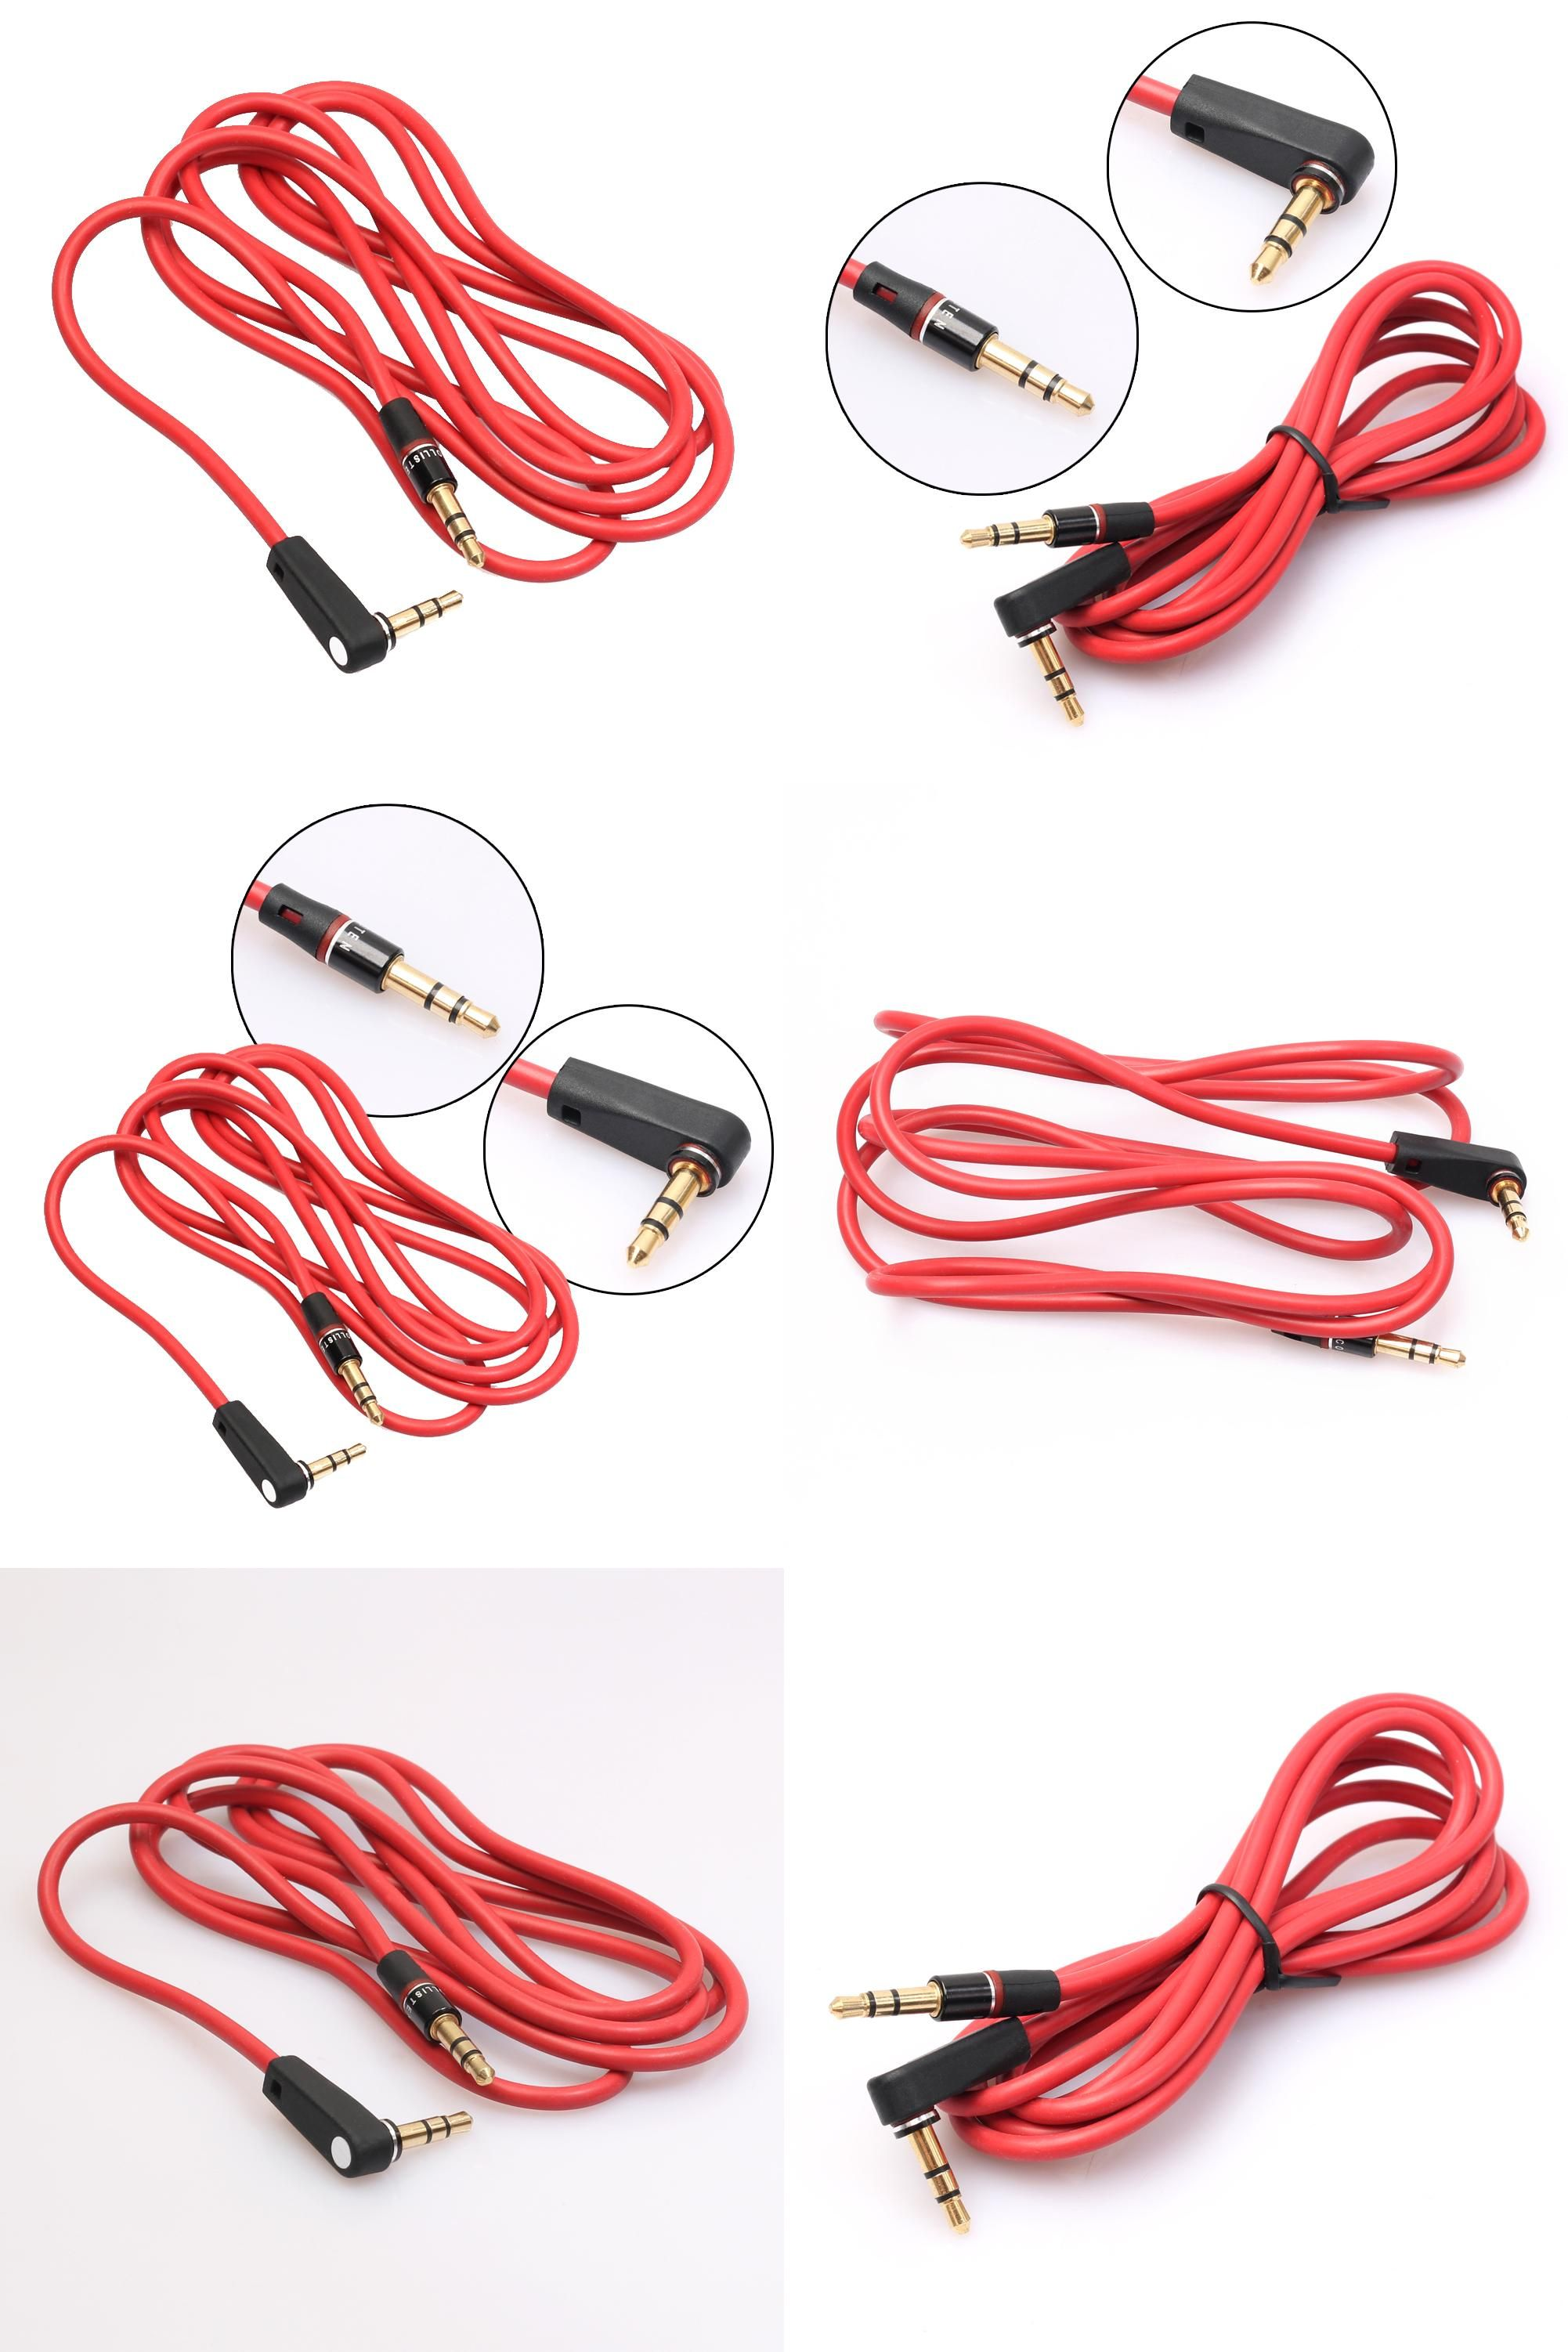 Visit to Buy] 3.5mm Audio Extension Cable Aux Stereo Jack Cable ...